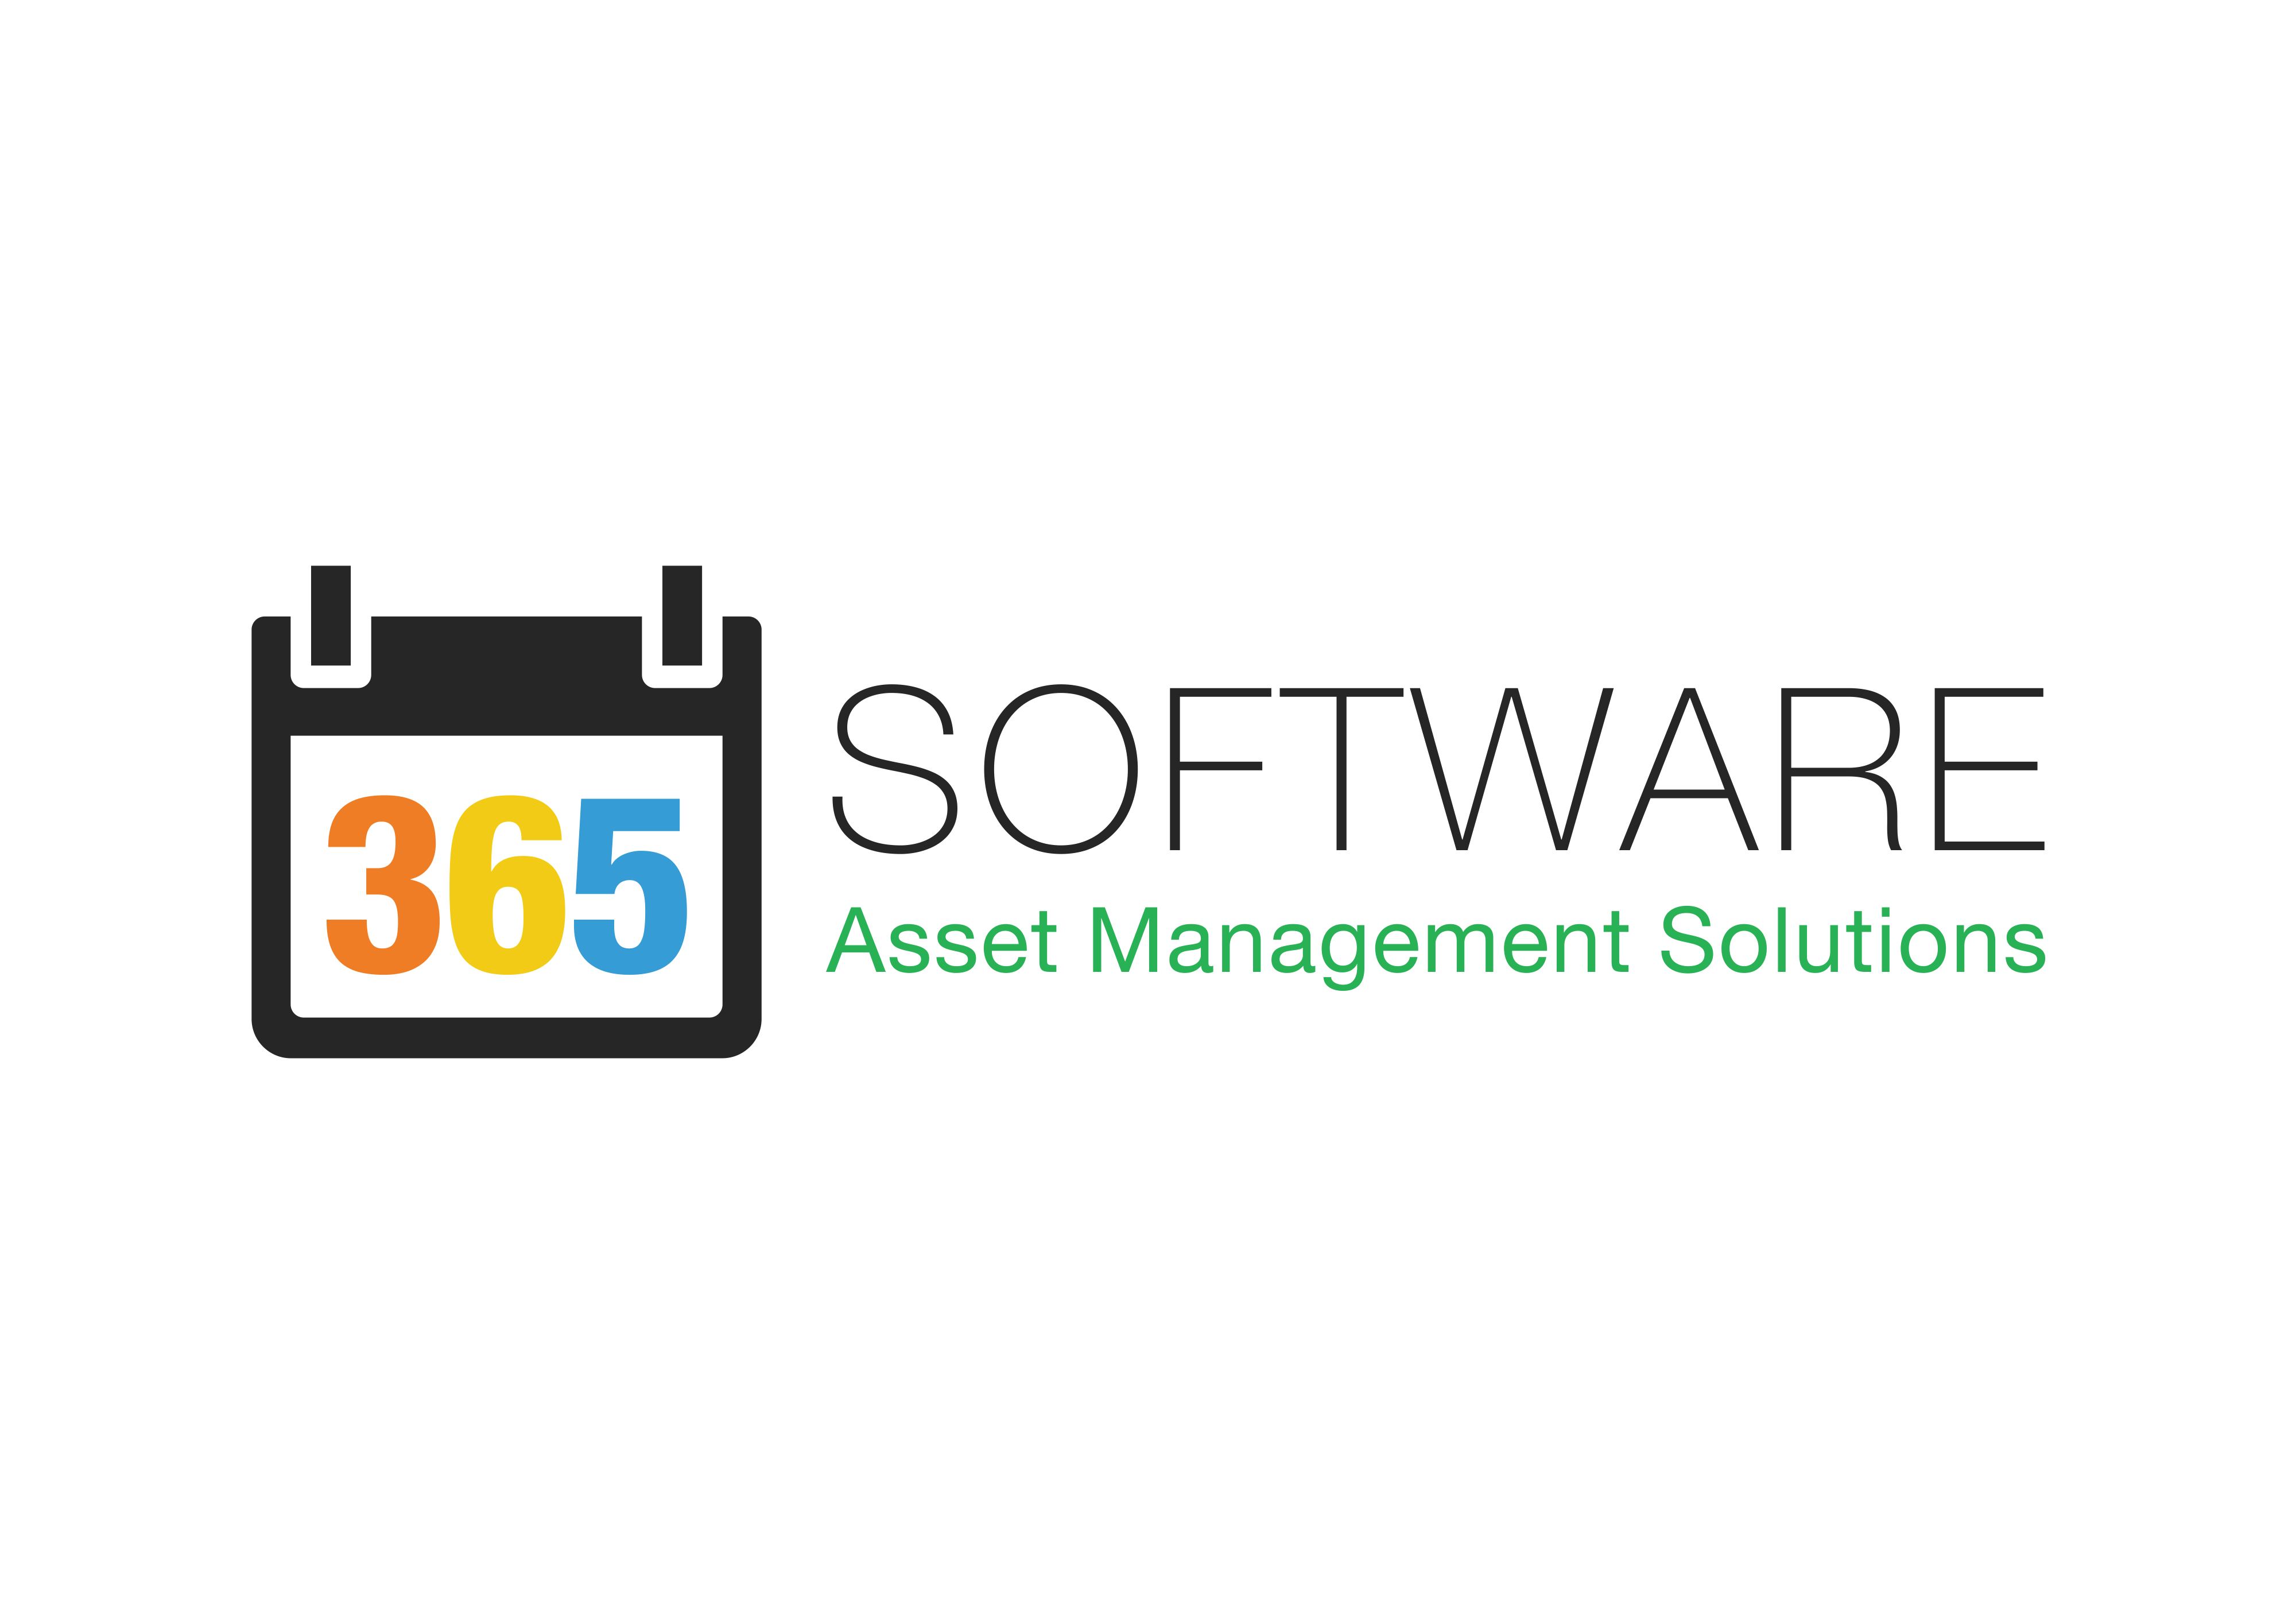 365 Software